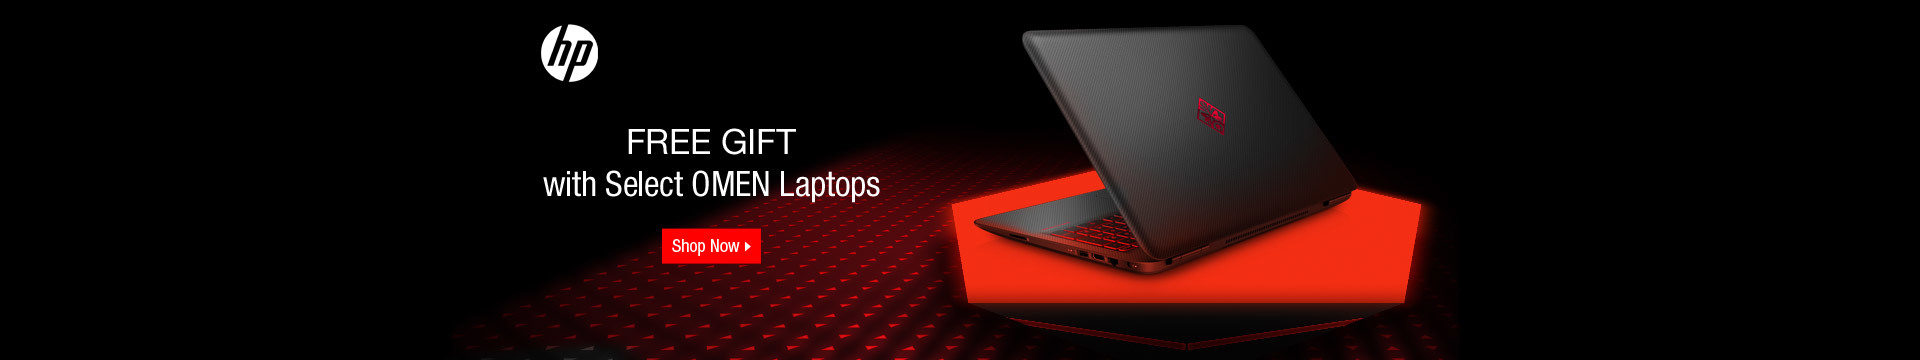 Free gift with select OMEN laptops